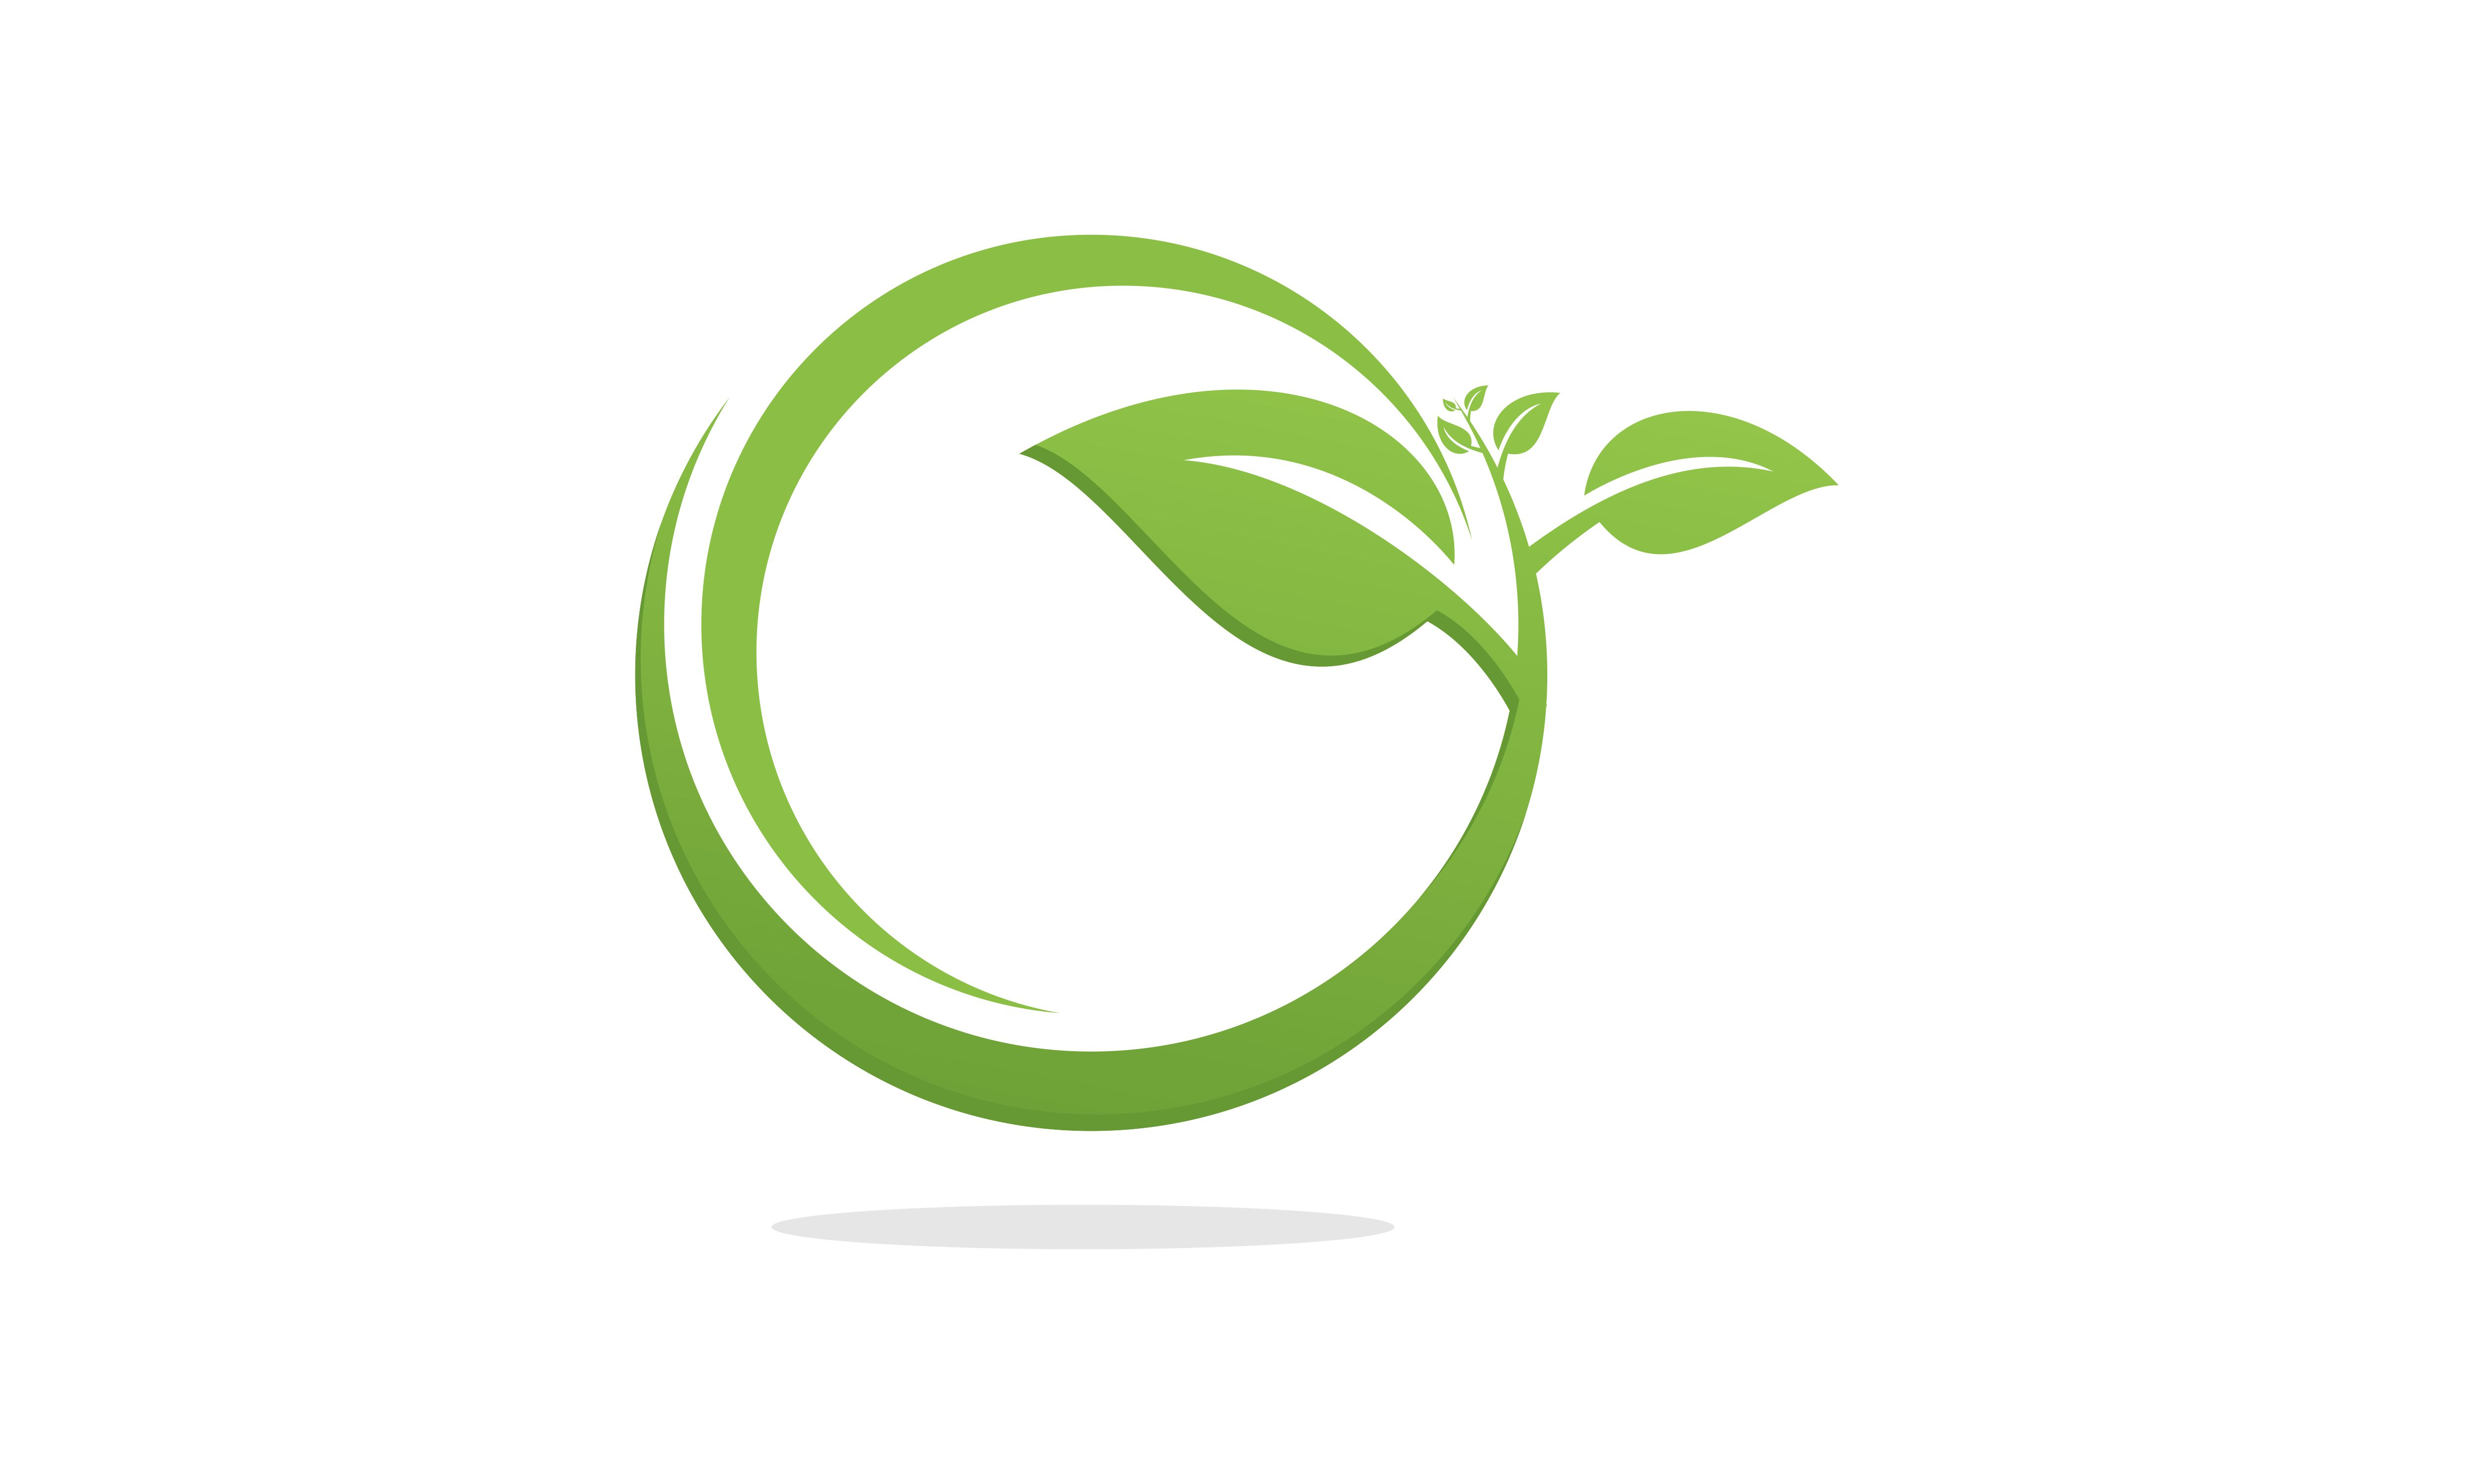 Download Free Green Leaf Ecology Logo Graphic By 2qnah Creative Fabrica for Cricut Explore, Silhouette and other cutting machines.